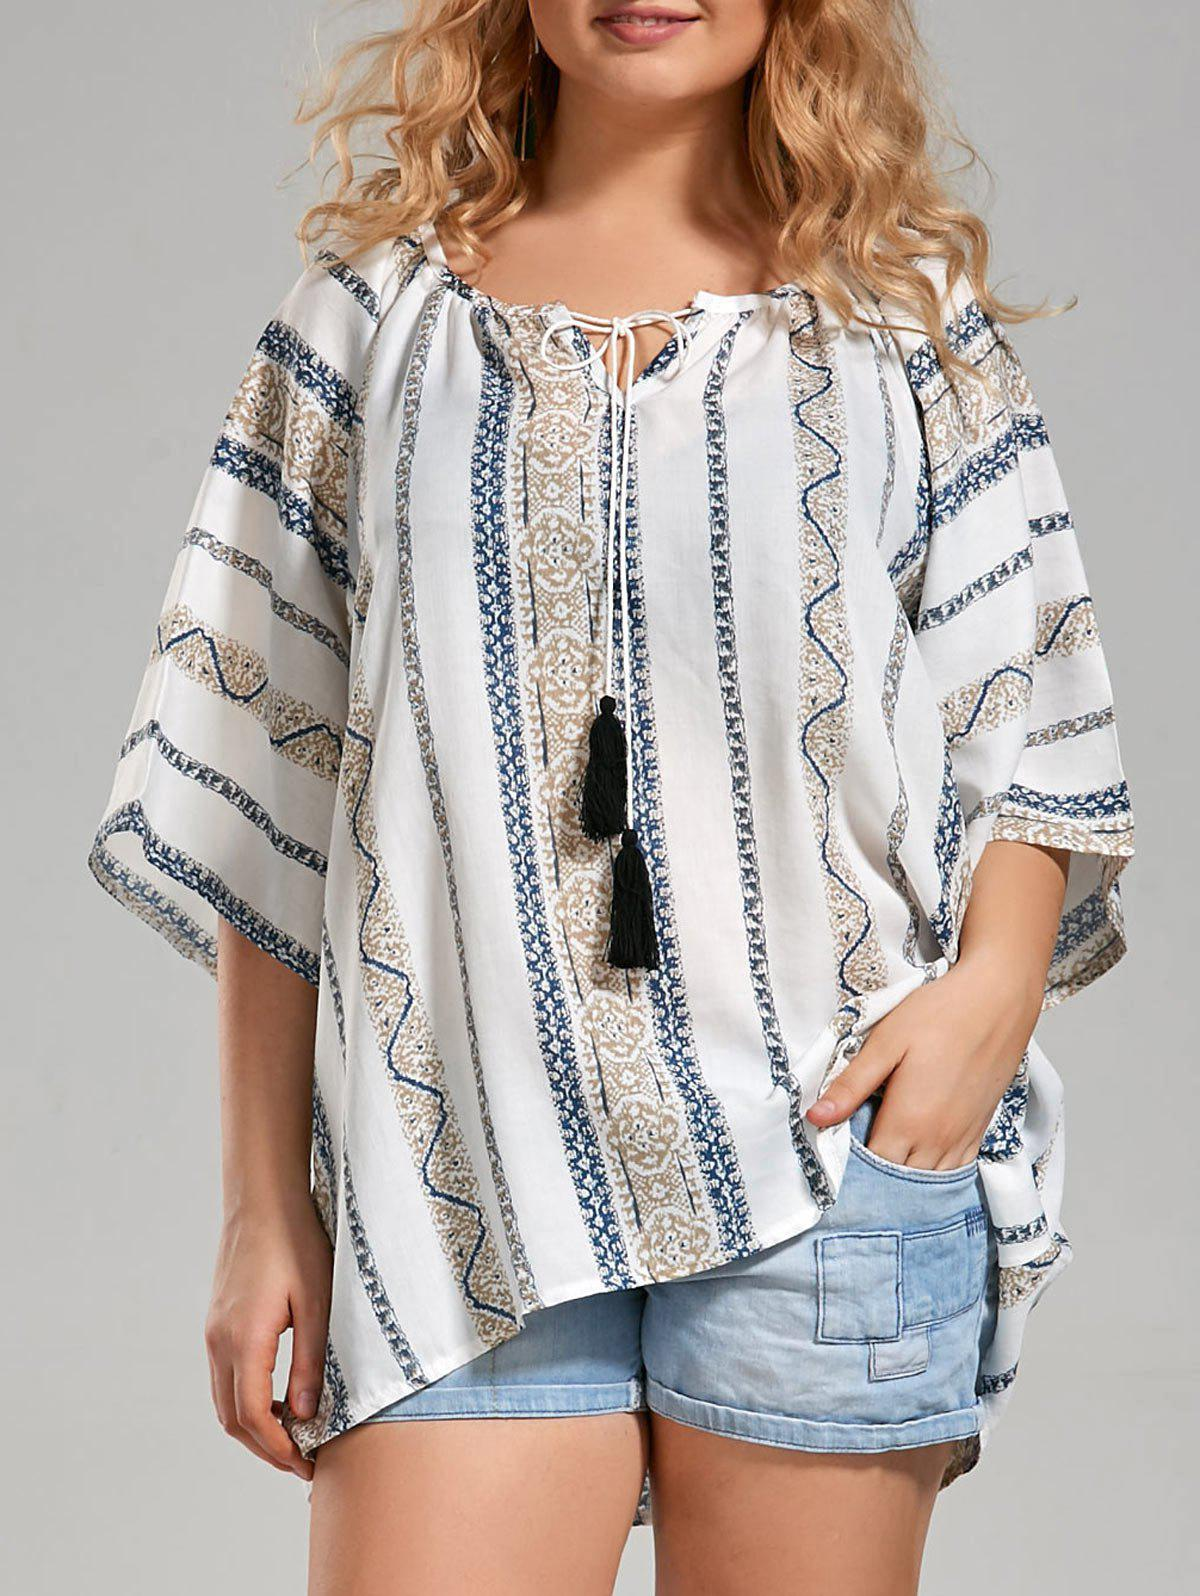 Plus Size Tribal Printed Bohemian Top with TasselWOMEN<br><br>Size: 5XL; Color: WHITE; Material: Cotton,Cotton Blends; Shirt Length: Long; Sleeve Length: Three Quarter; Collar: Scoop Neck; Style: Casual; Season: Spring,Summer; Embellishment: Tassel; Pattern Type: Geometric; Weight: 0.2200kg; Package Contents: 1 x Top;